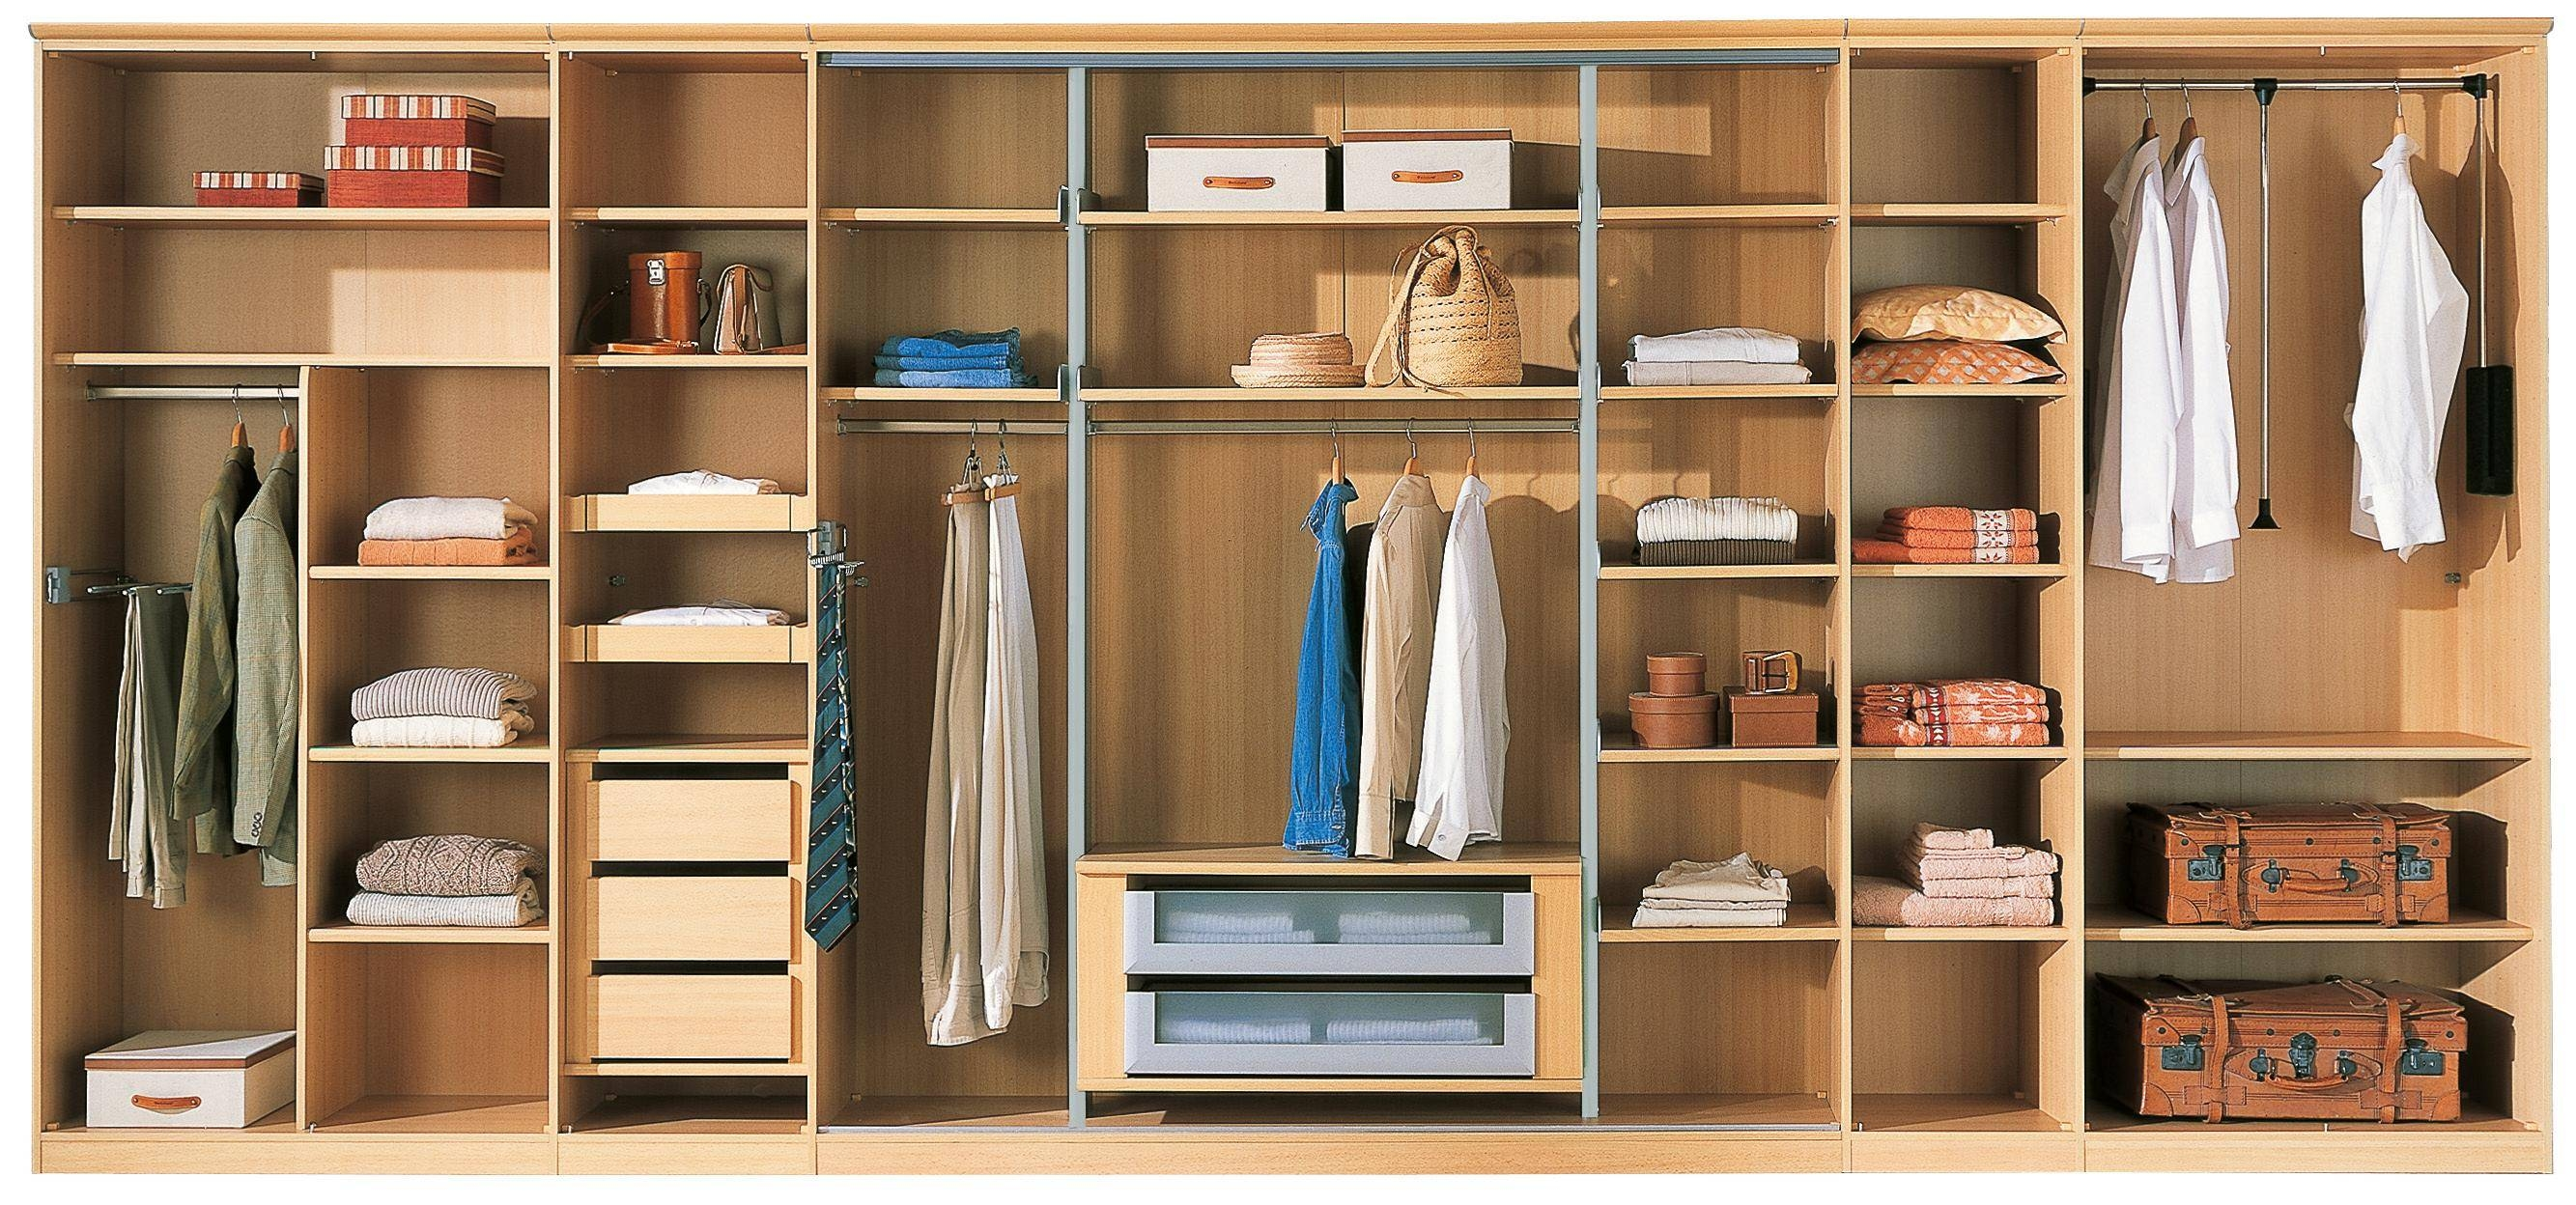 Bedroom Furniture For Hanging Clothes | Roselawnlutheran throughout Drawers and Shelves for Wardrobes (Image 10 of 30)